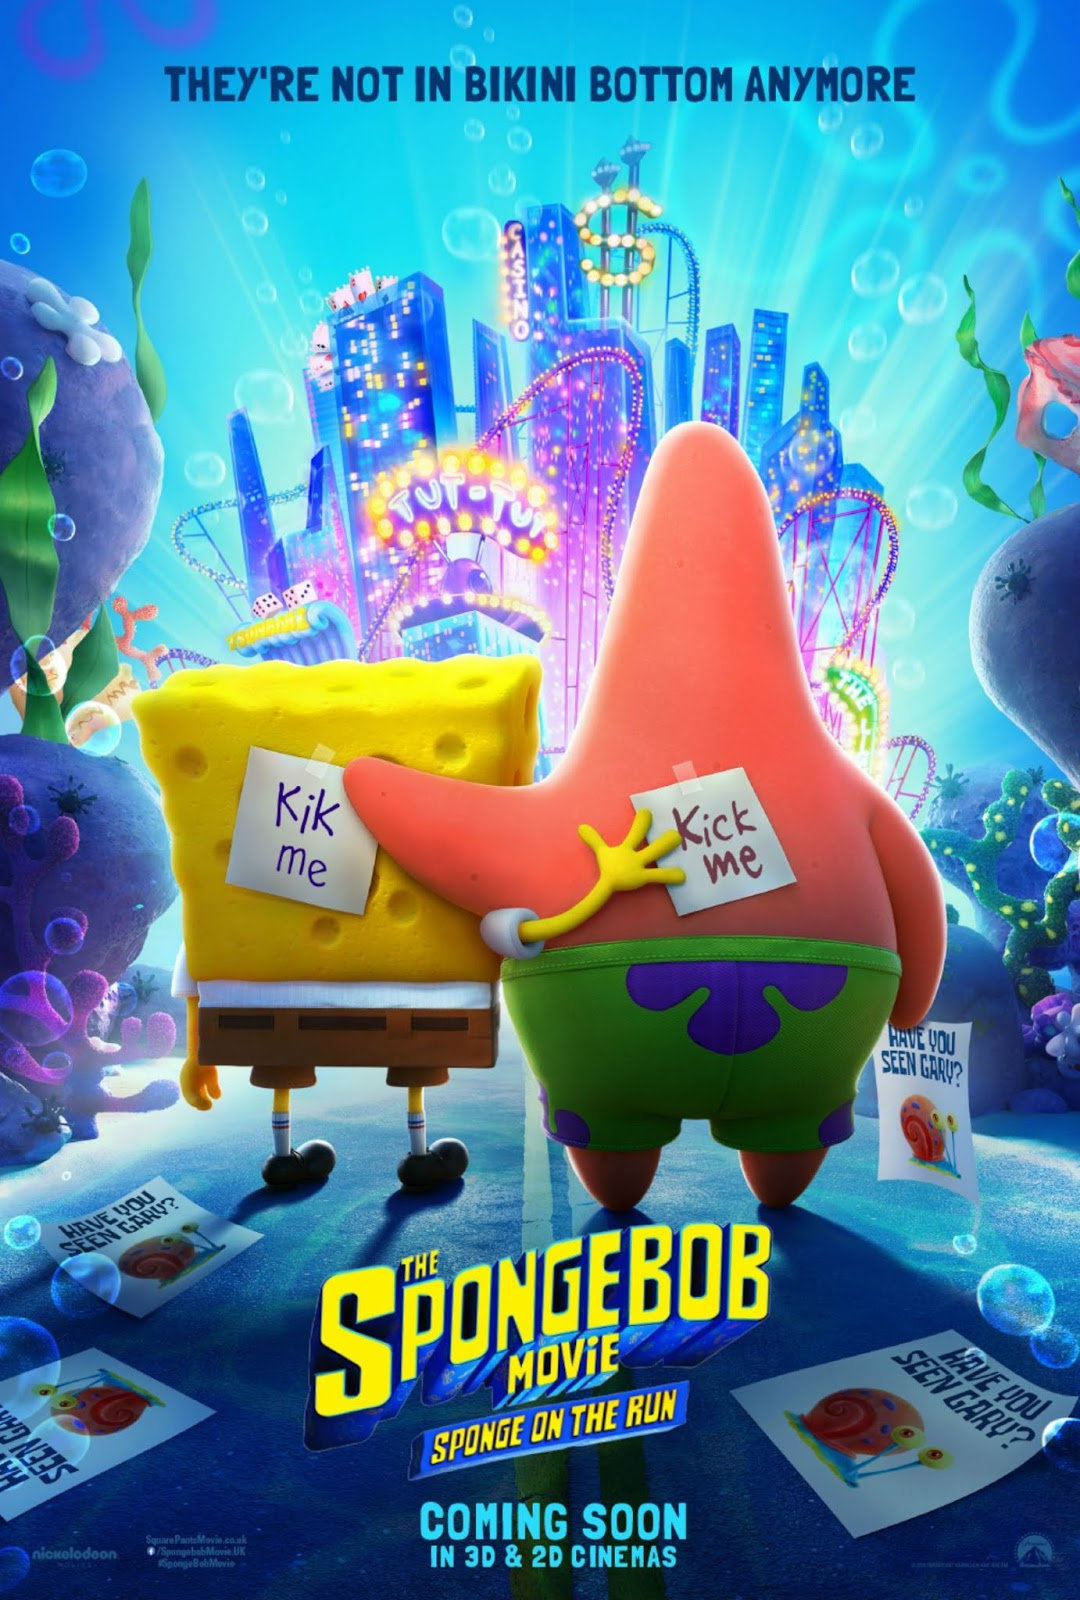 Nick Com Spongebob Movie : spongebob, movie, NickALive!:, SpongeBob, Movie:, Sponge, Official, Trailer, Paramount, Pictures